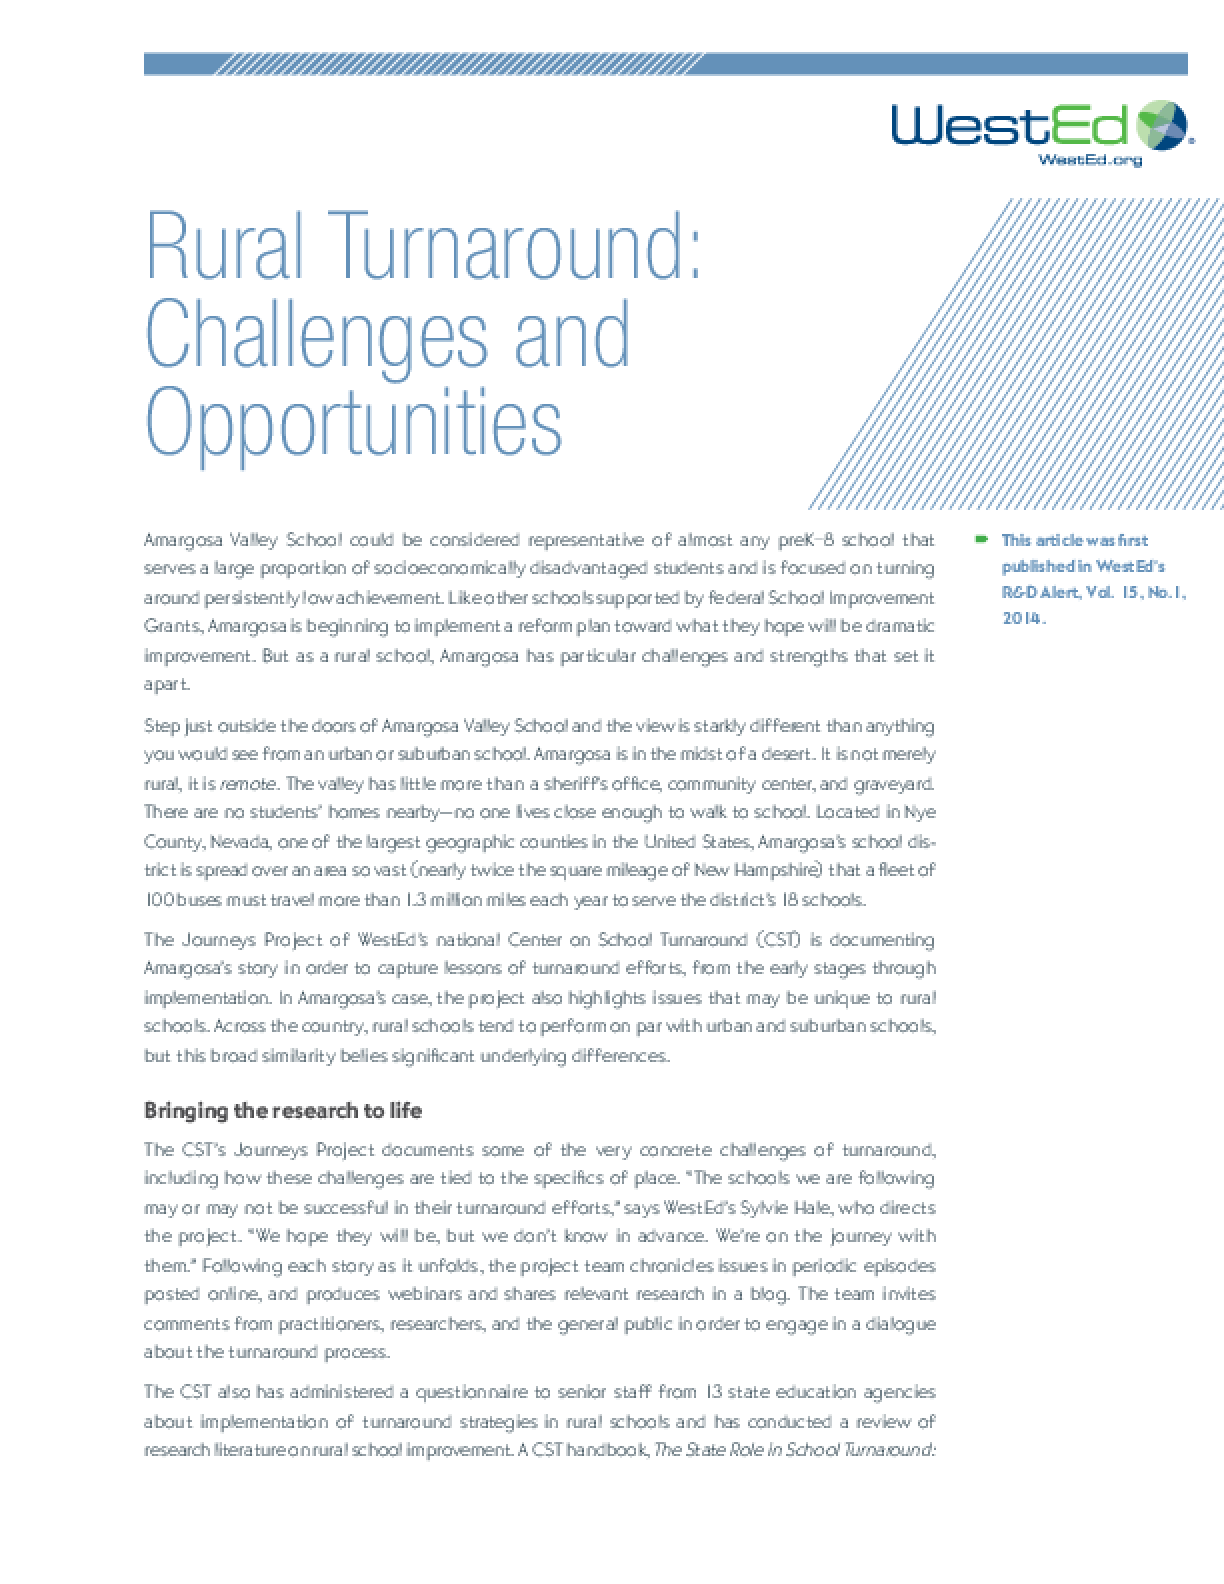 Rural Turnaround Challenges and Opportunities